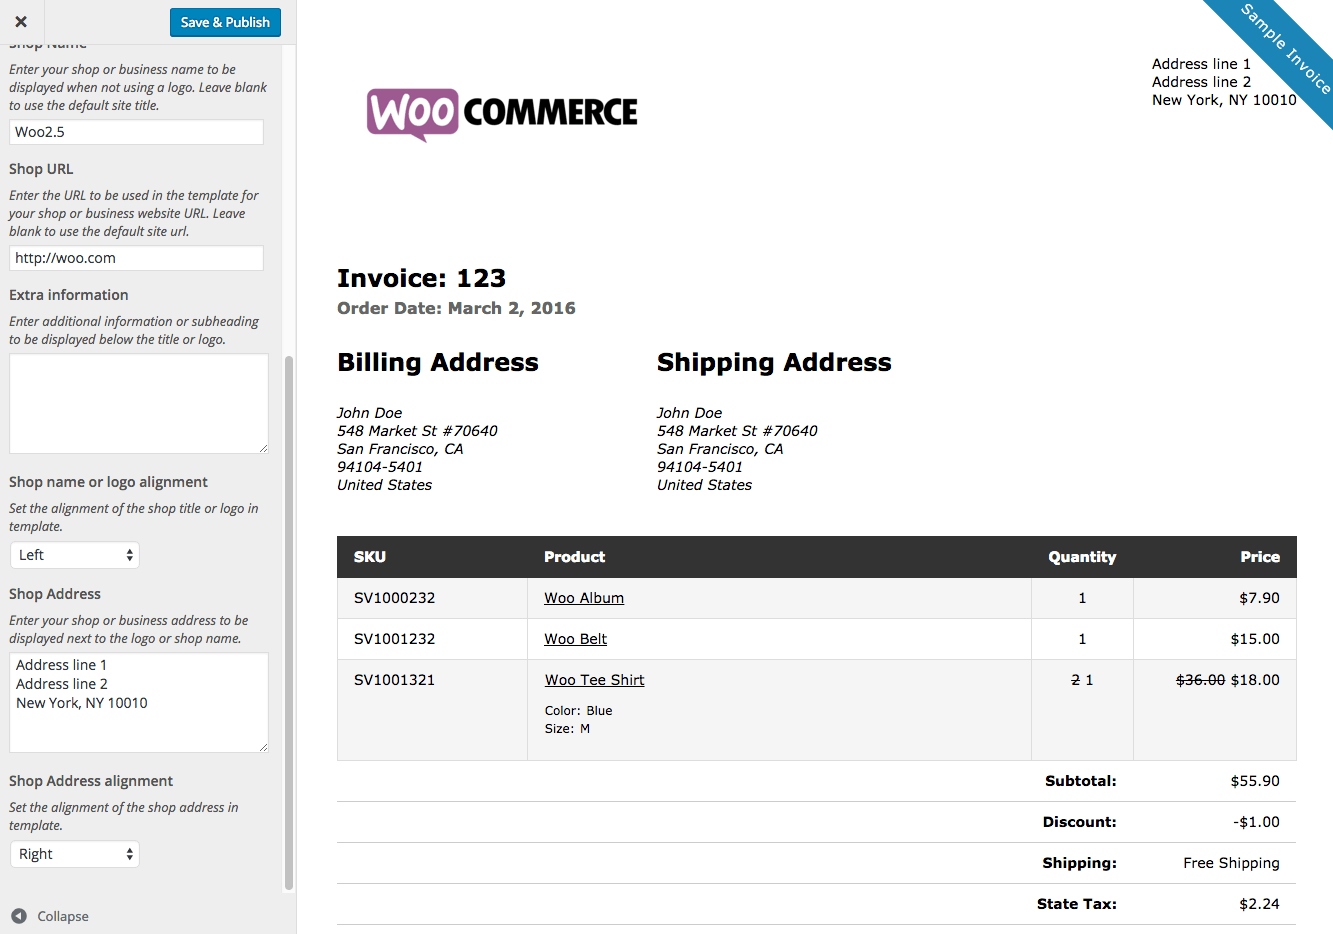 Theologygeekblogus  Winning Print Invoices Amp Packing Lists  Woocommerce With Excellent Woocommerce Print Invoices  Packing Lists Customizer With Appealing How To Write Invoice Letter Also Supplier Invoices In Addition Preparing An Invoice And Vehicle Sales Invoice As Well As About Invoice Additionally Excel Invoice Sample From Woocommercecom With Theologygeekblogus  Excellent Print Invoices Amp Packing Lists  Woocommerce With Appealing Woocommerce Print Invoices  Packing Lists Customizer And Winning How To Write Invoice Letter Also Supplier Invoices In Addition Preparing An Invoice From Woocommercecom